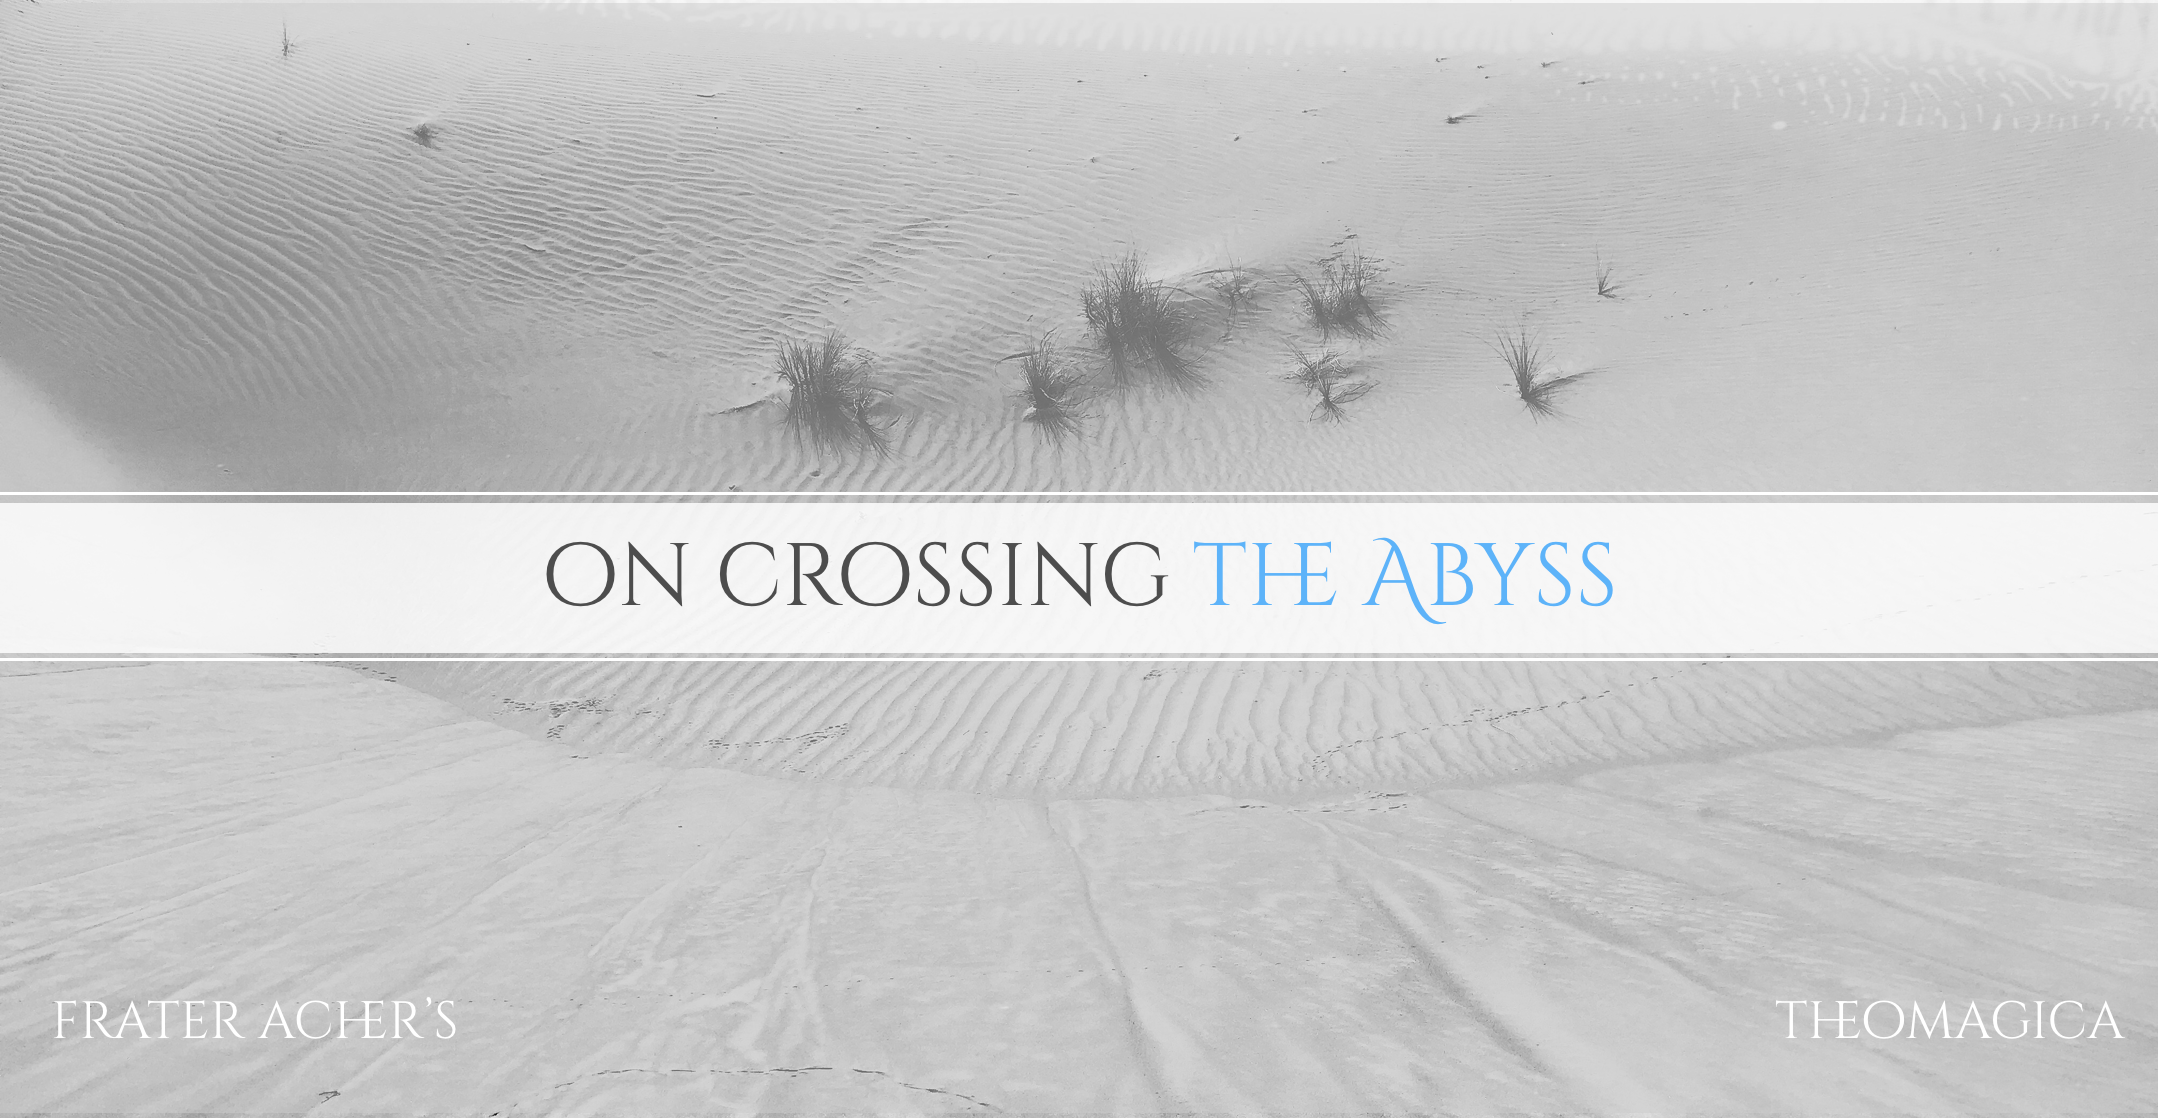 On Crossing the Abyss